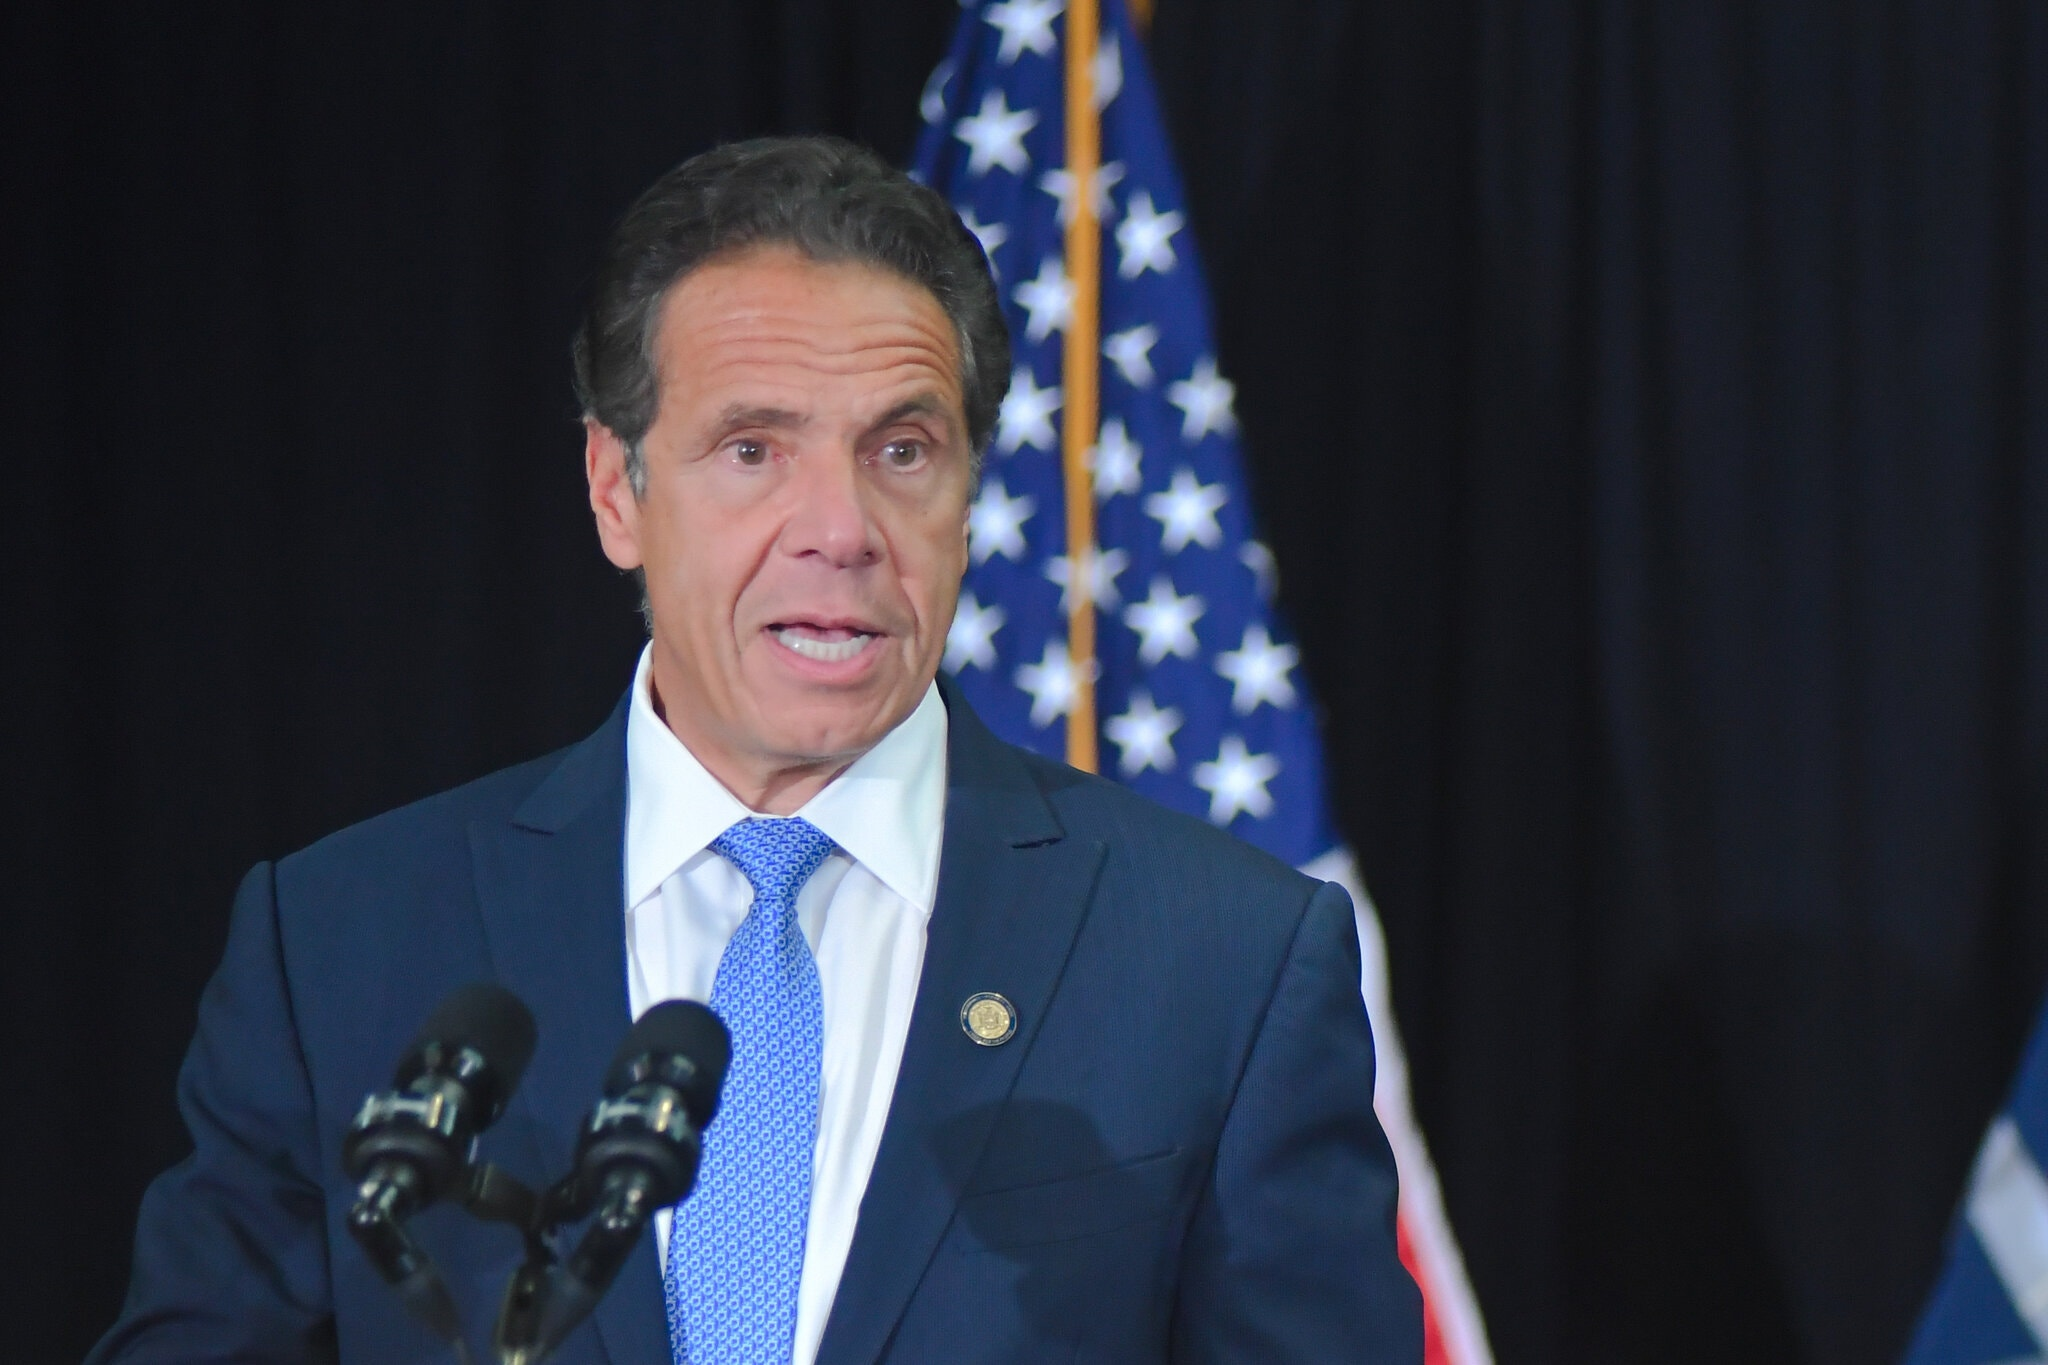 New York Governor Andrew Cuomo at a podium